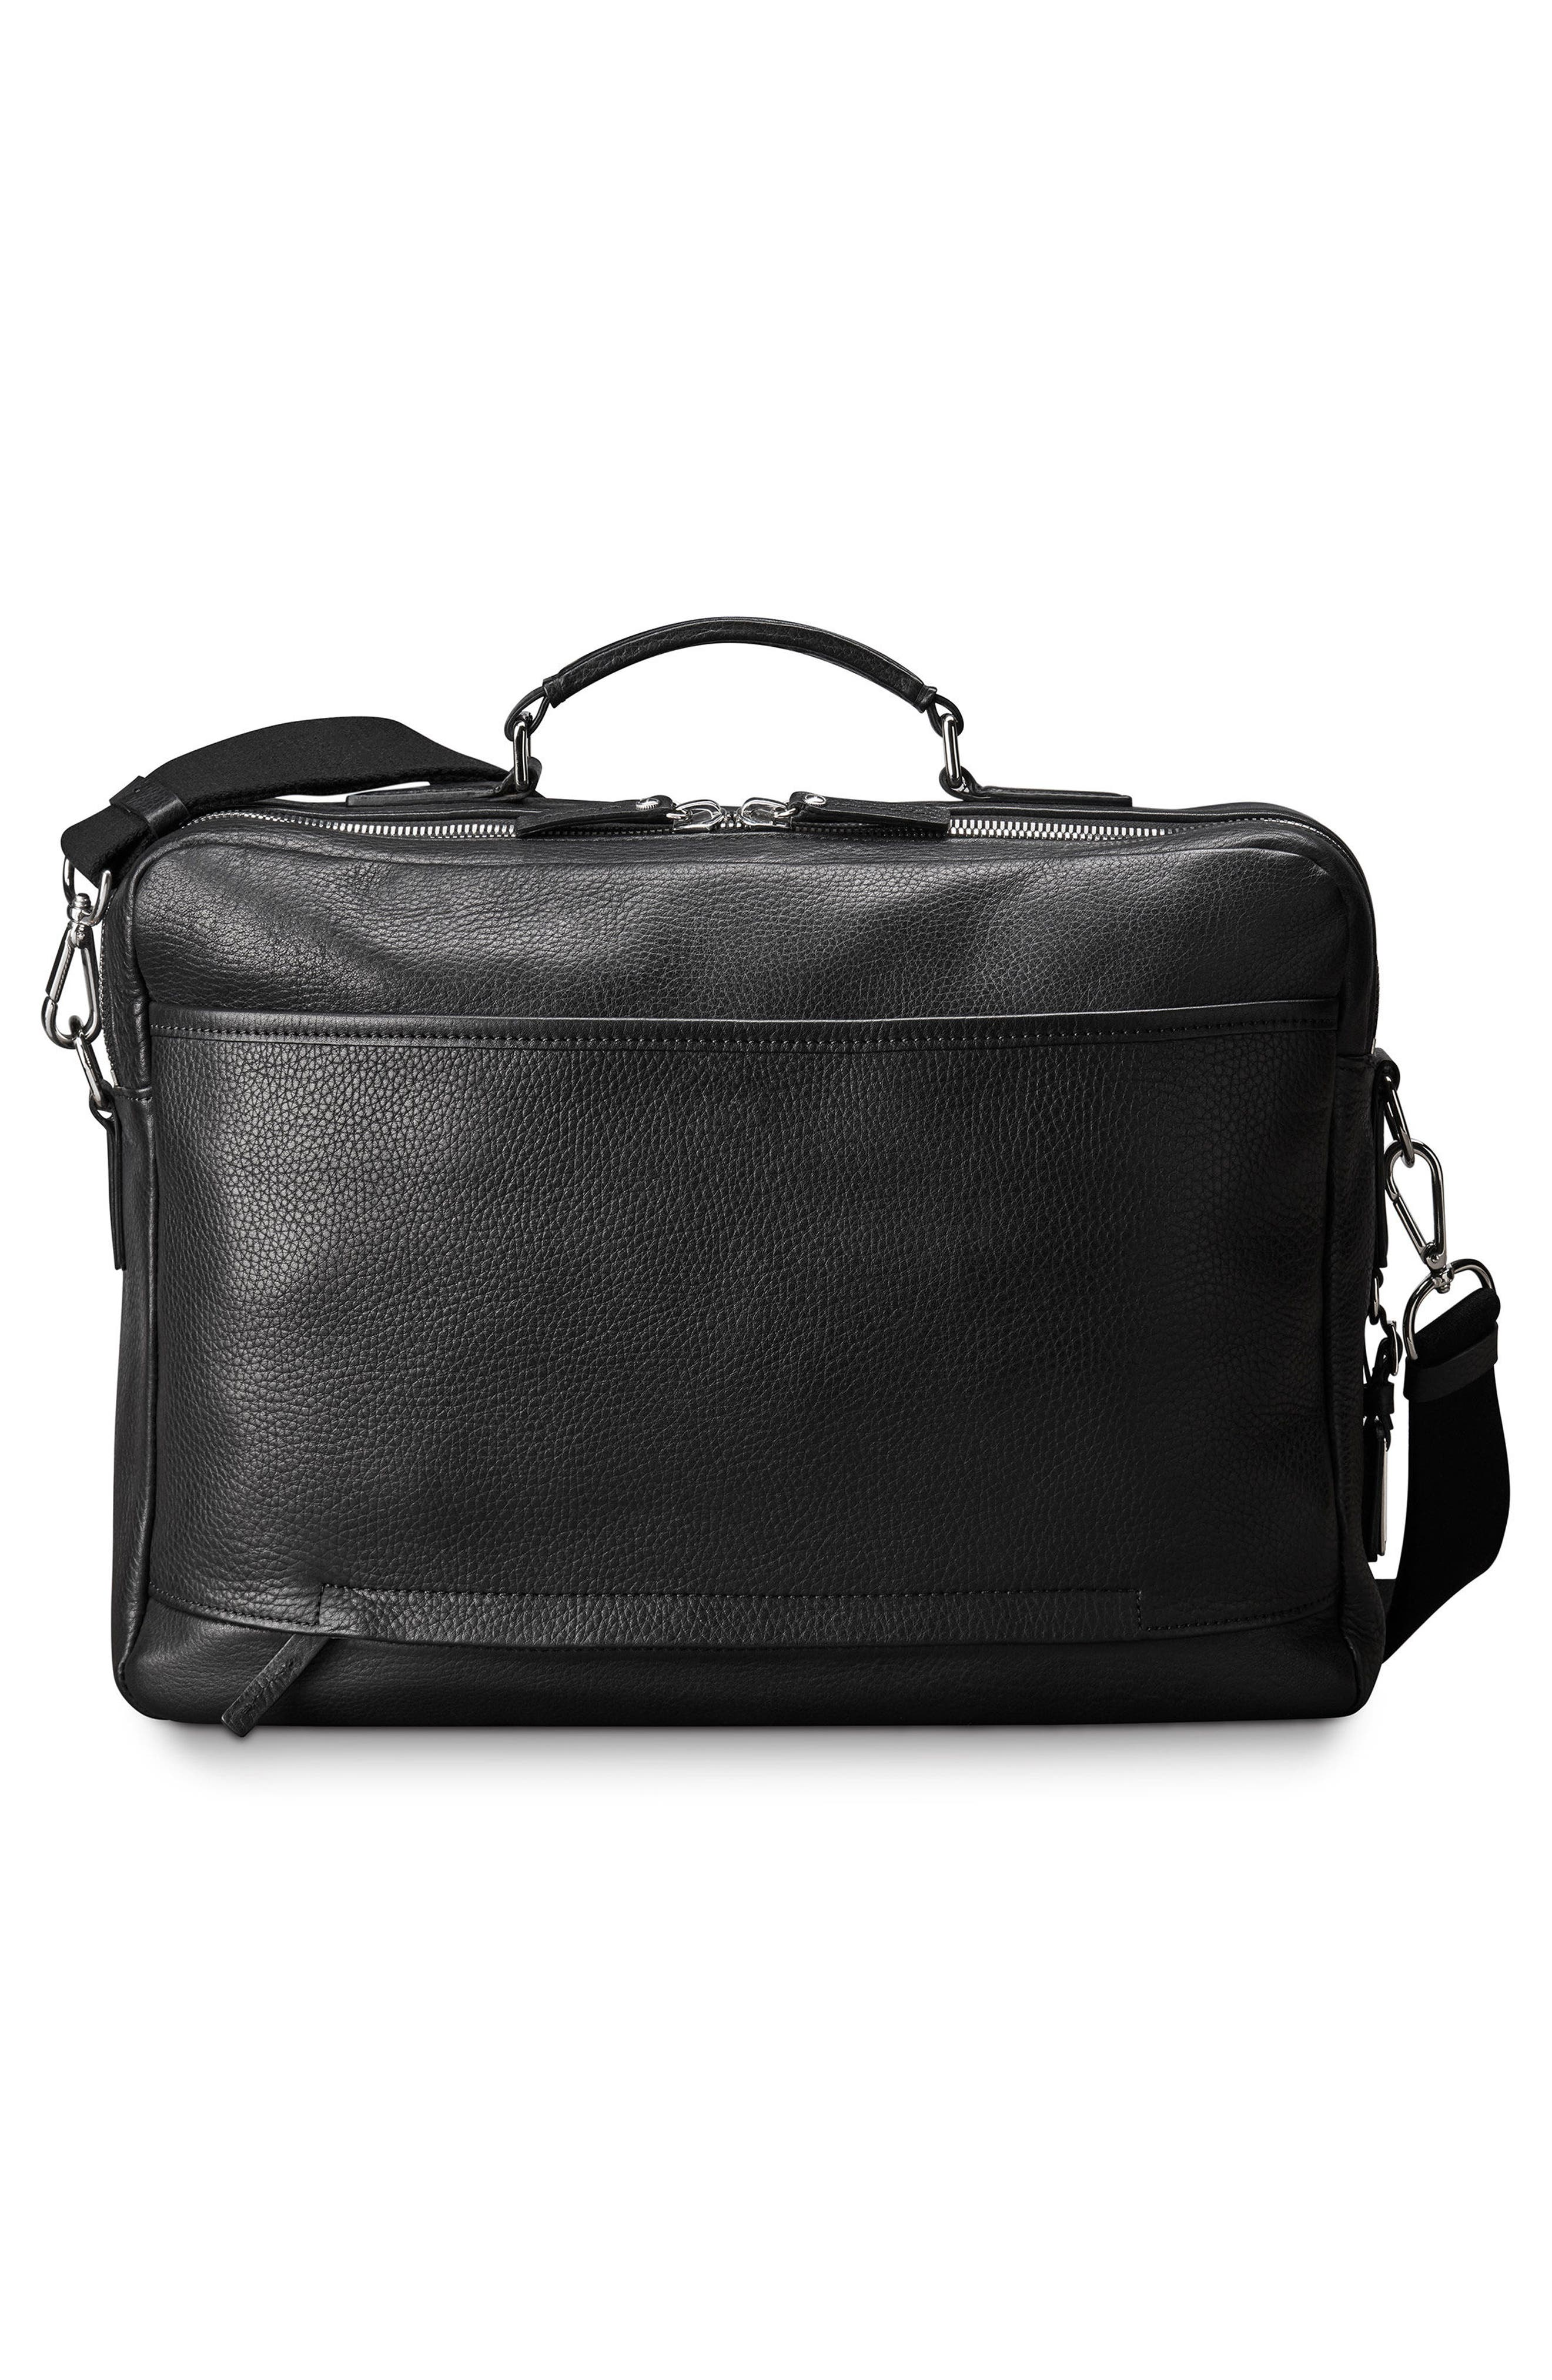 Canfield Briefcase,                             Alternate thumbnail 2, color,                             Black